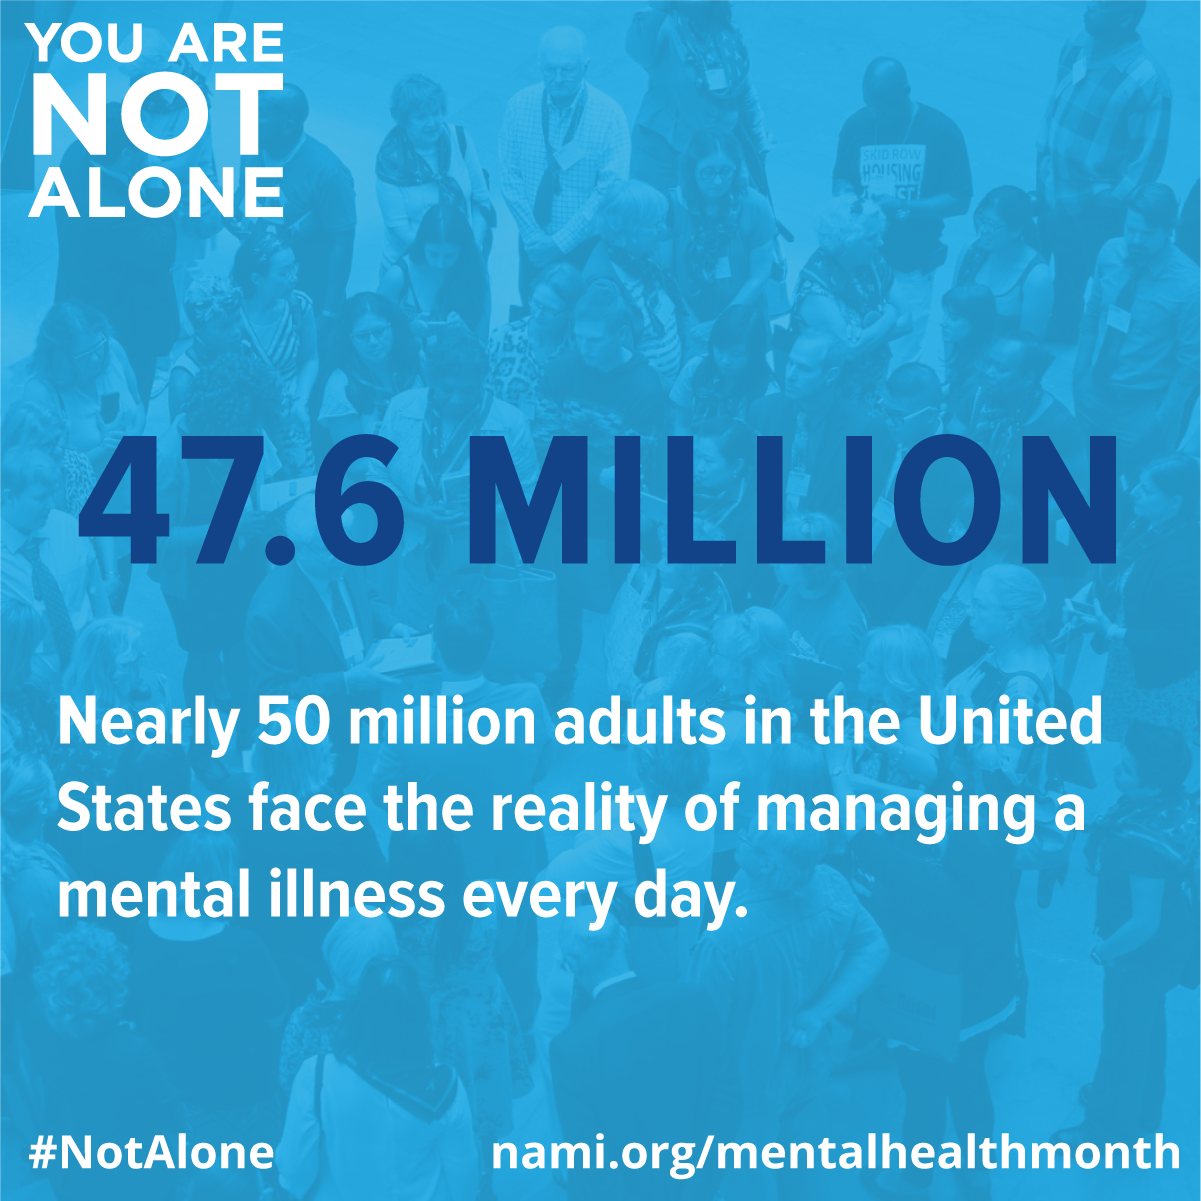 47.6 million adults manage mental illness